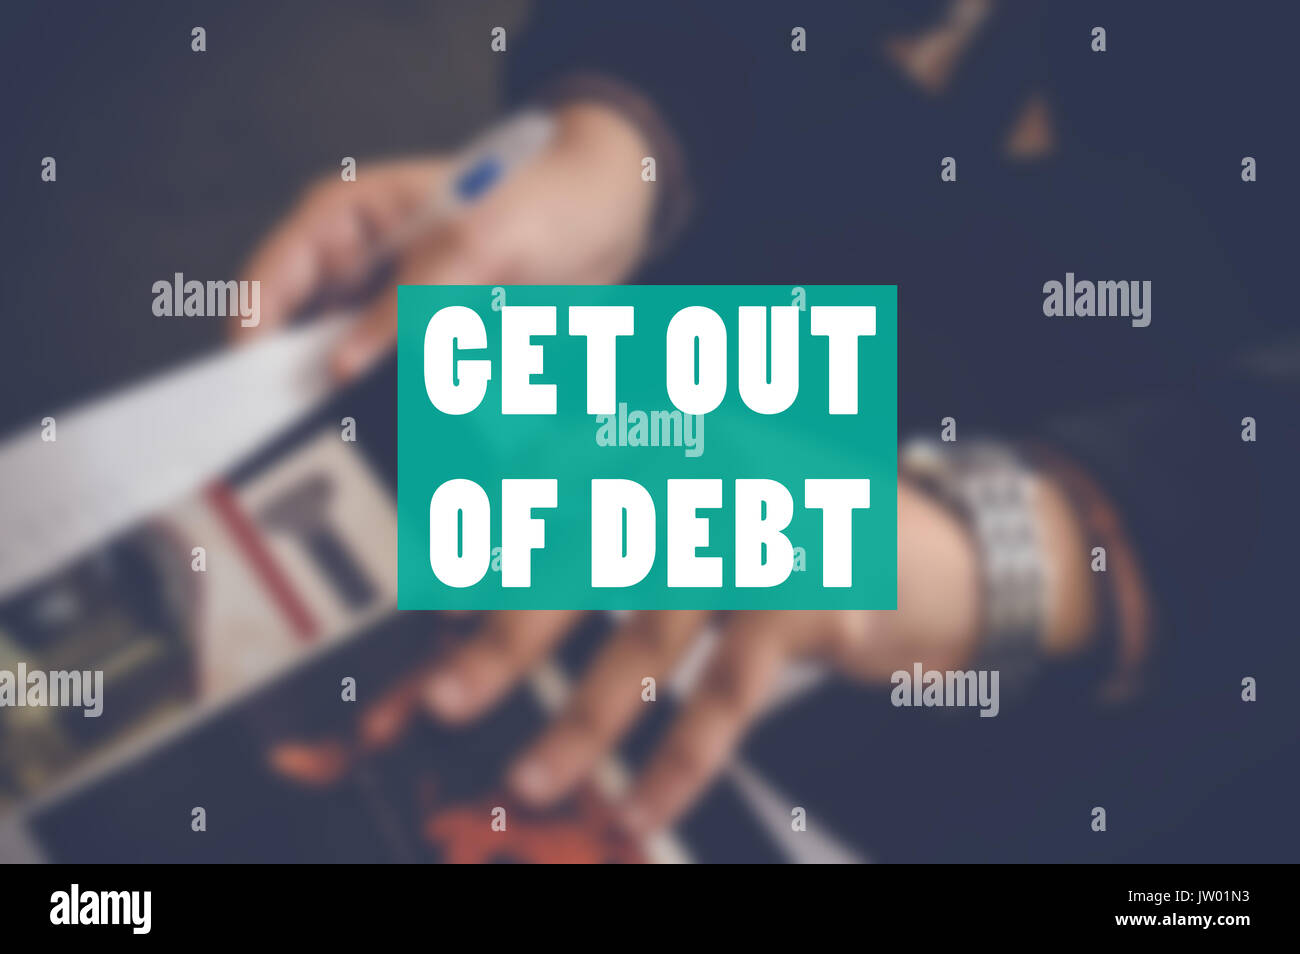 get out of debt business background - Stock Image